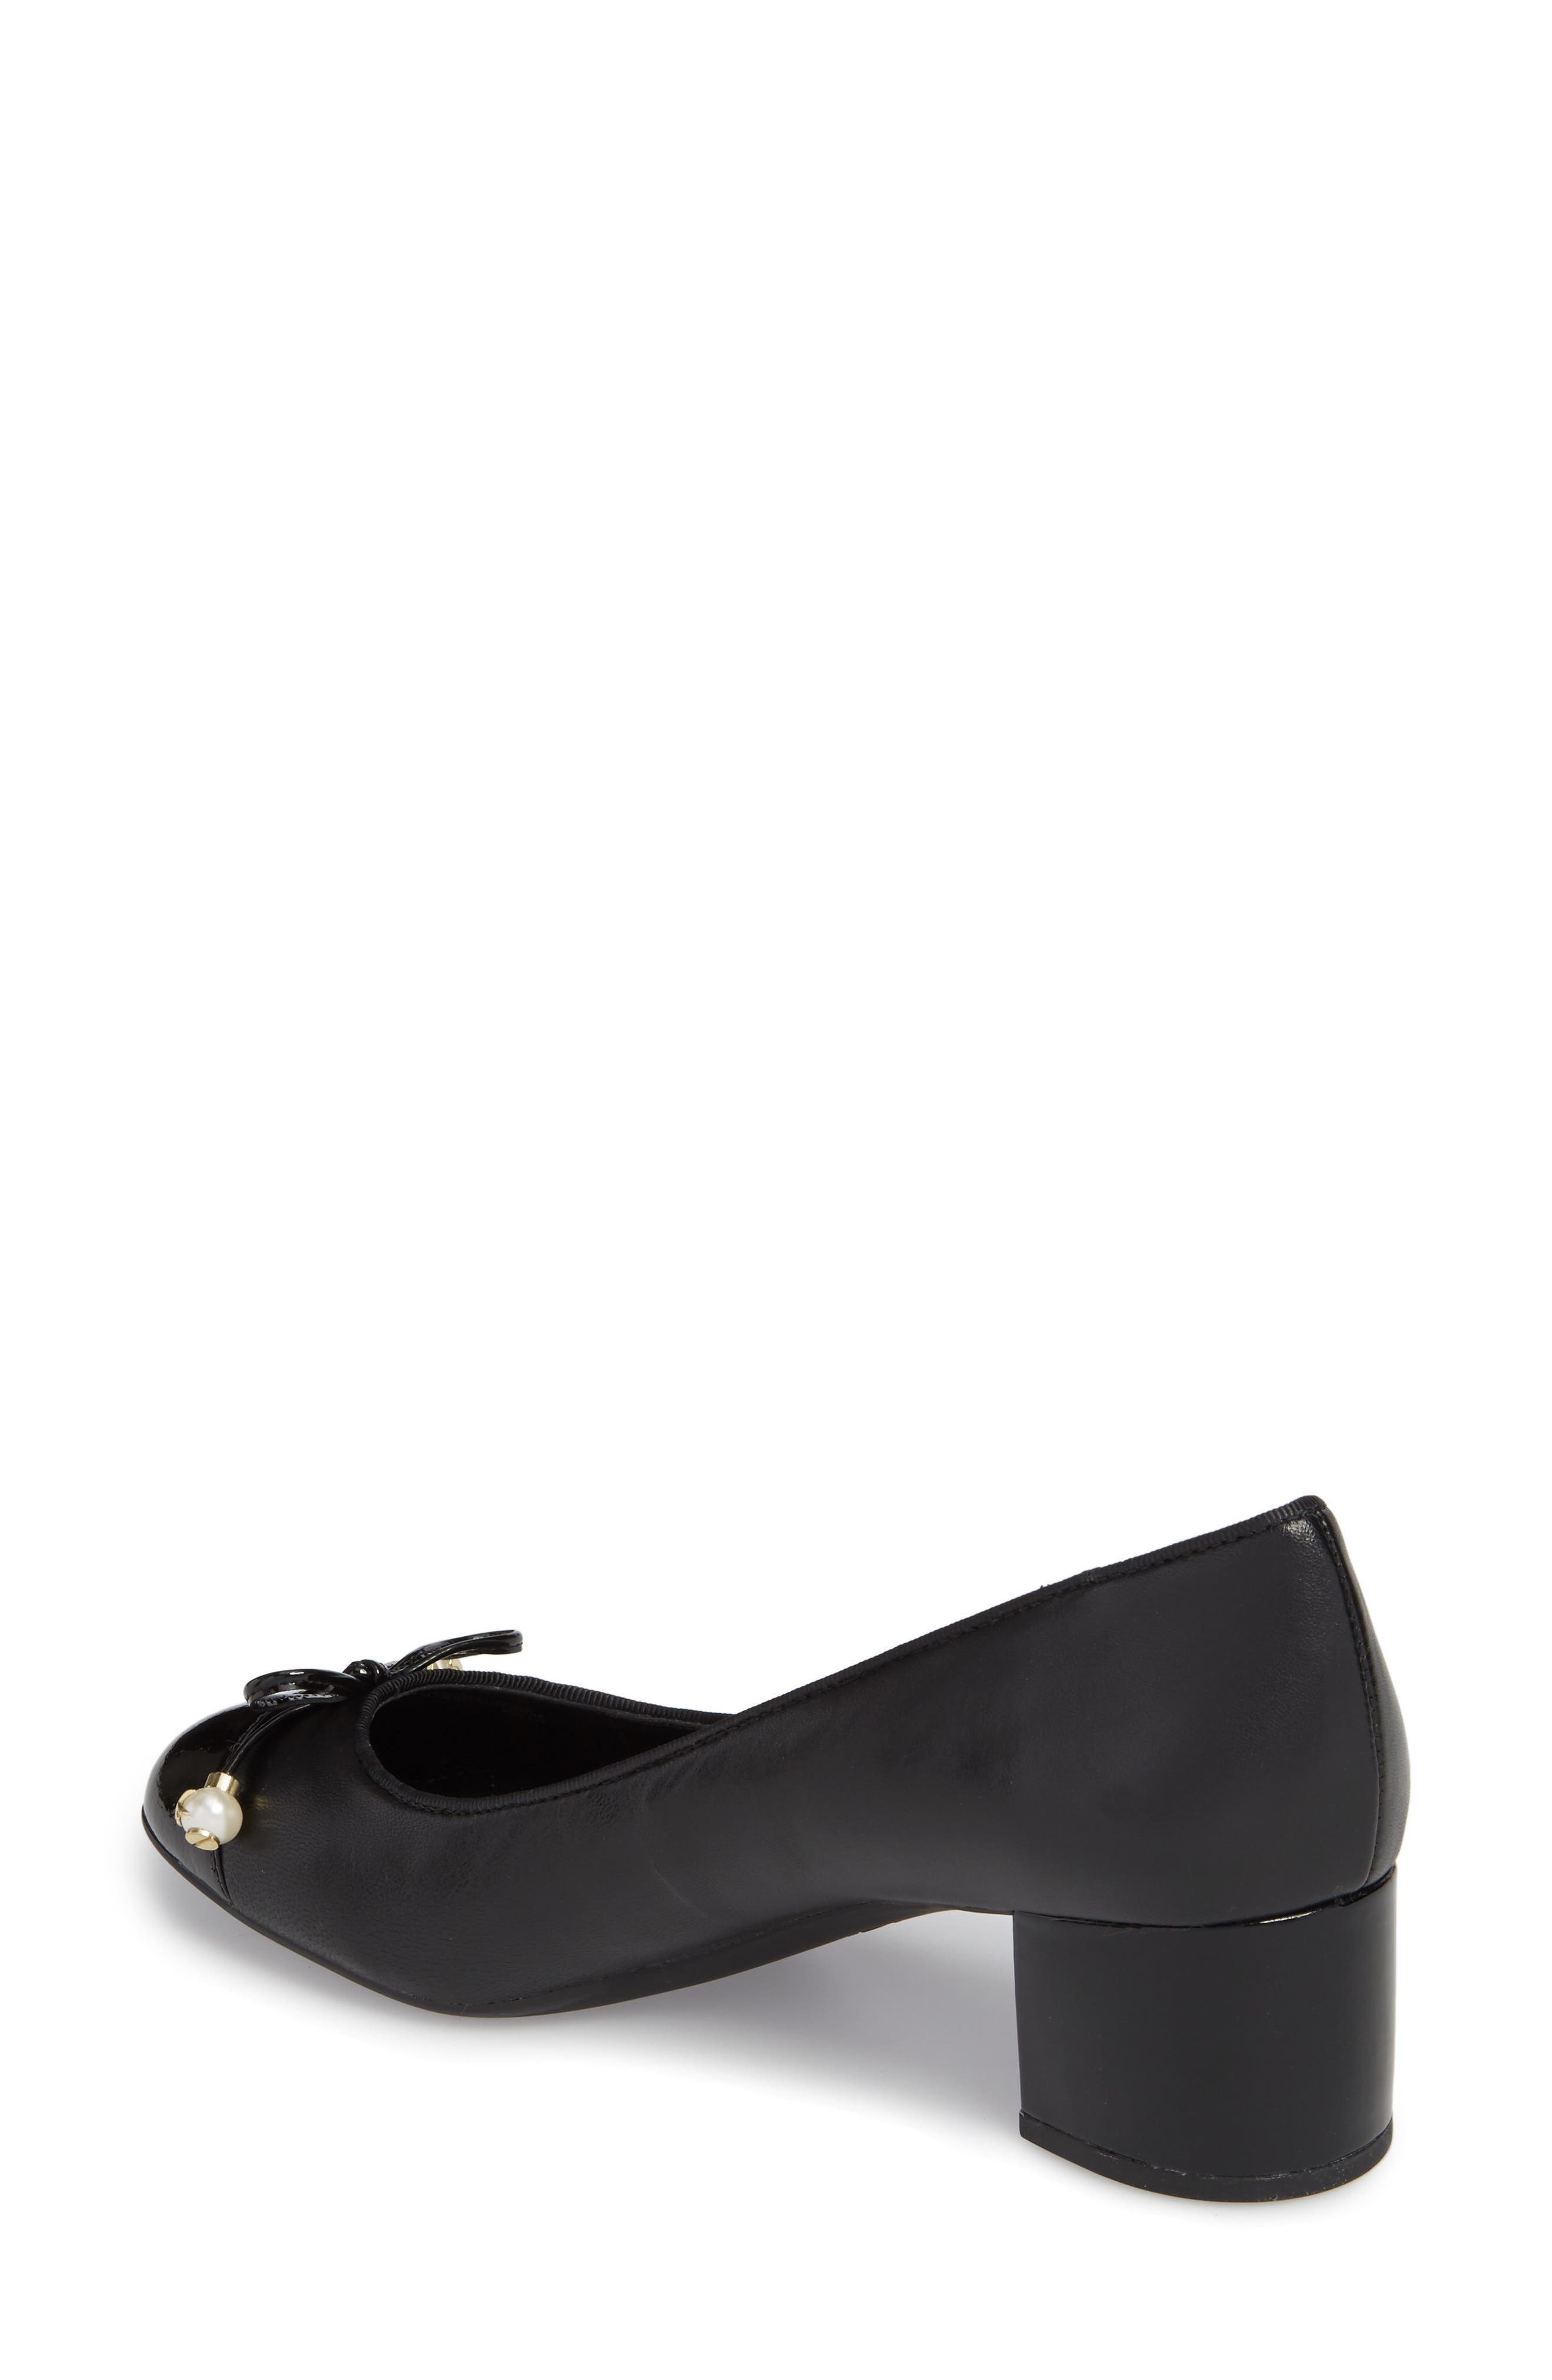 Gia Pump,                             Alternate thumbnail 2, color,                             Black Nappa Leather